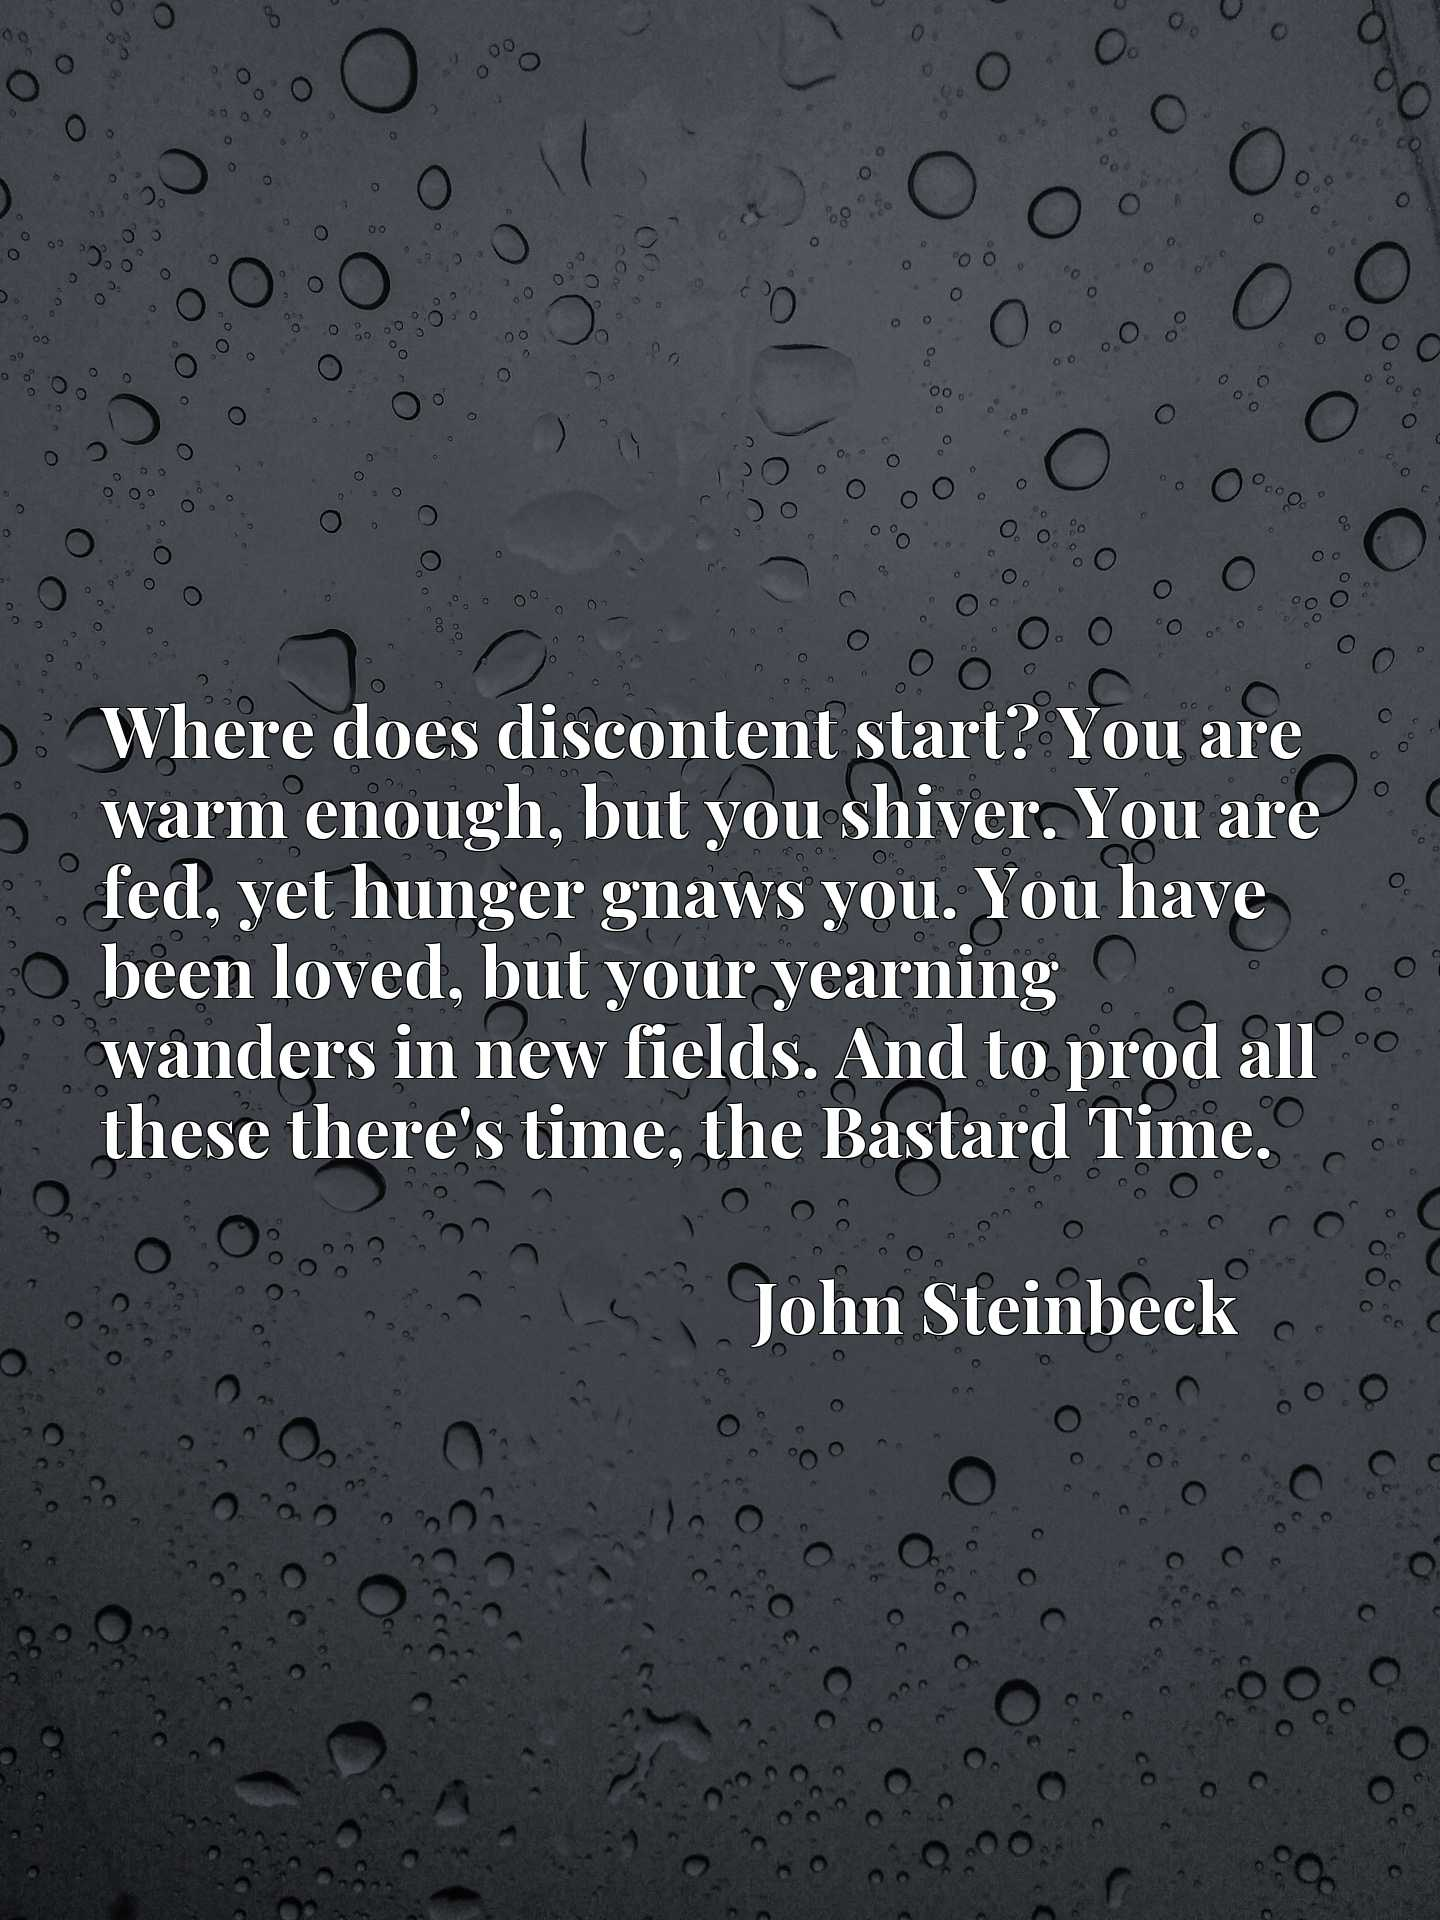 Where does discontent start? You are warm enough, but you shiver. You are fed, yet hunger gnaws you. You have been loved, but your yearning wanders in new fields. And to prod all these there's time, the Bastard Time.